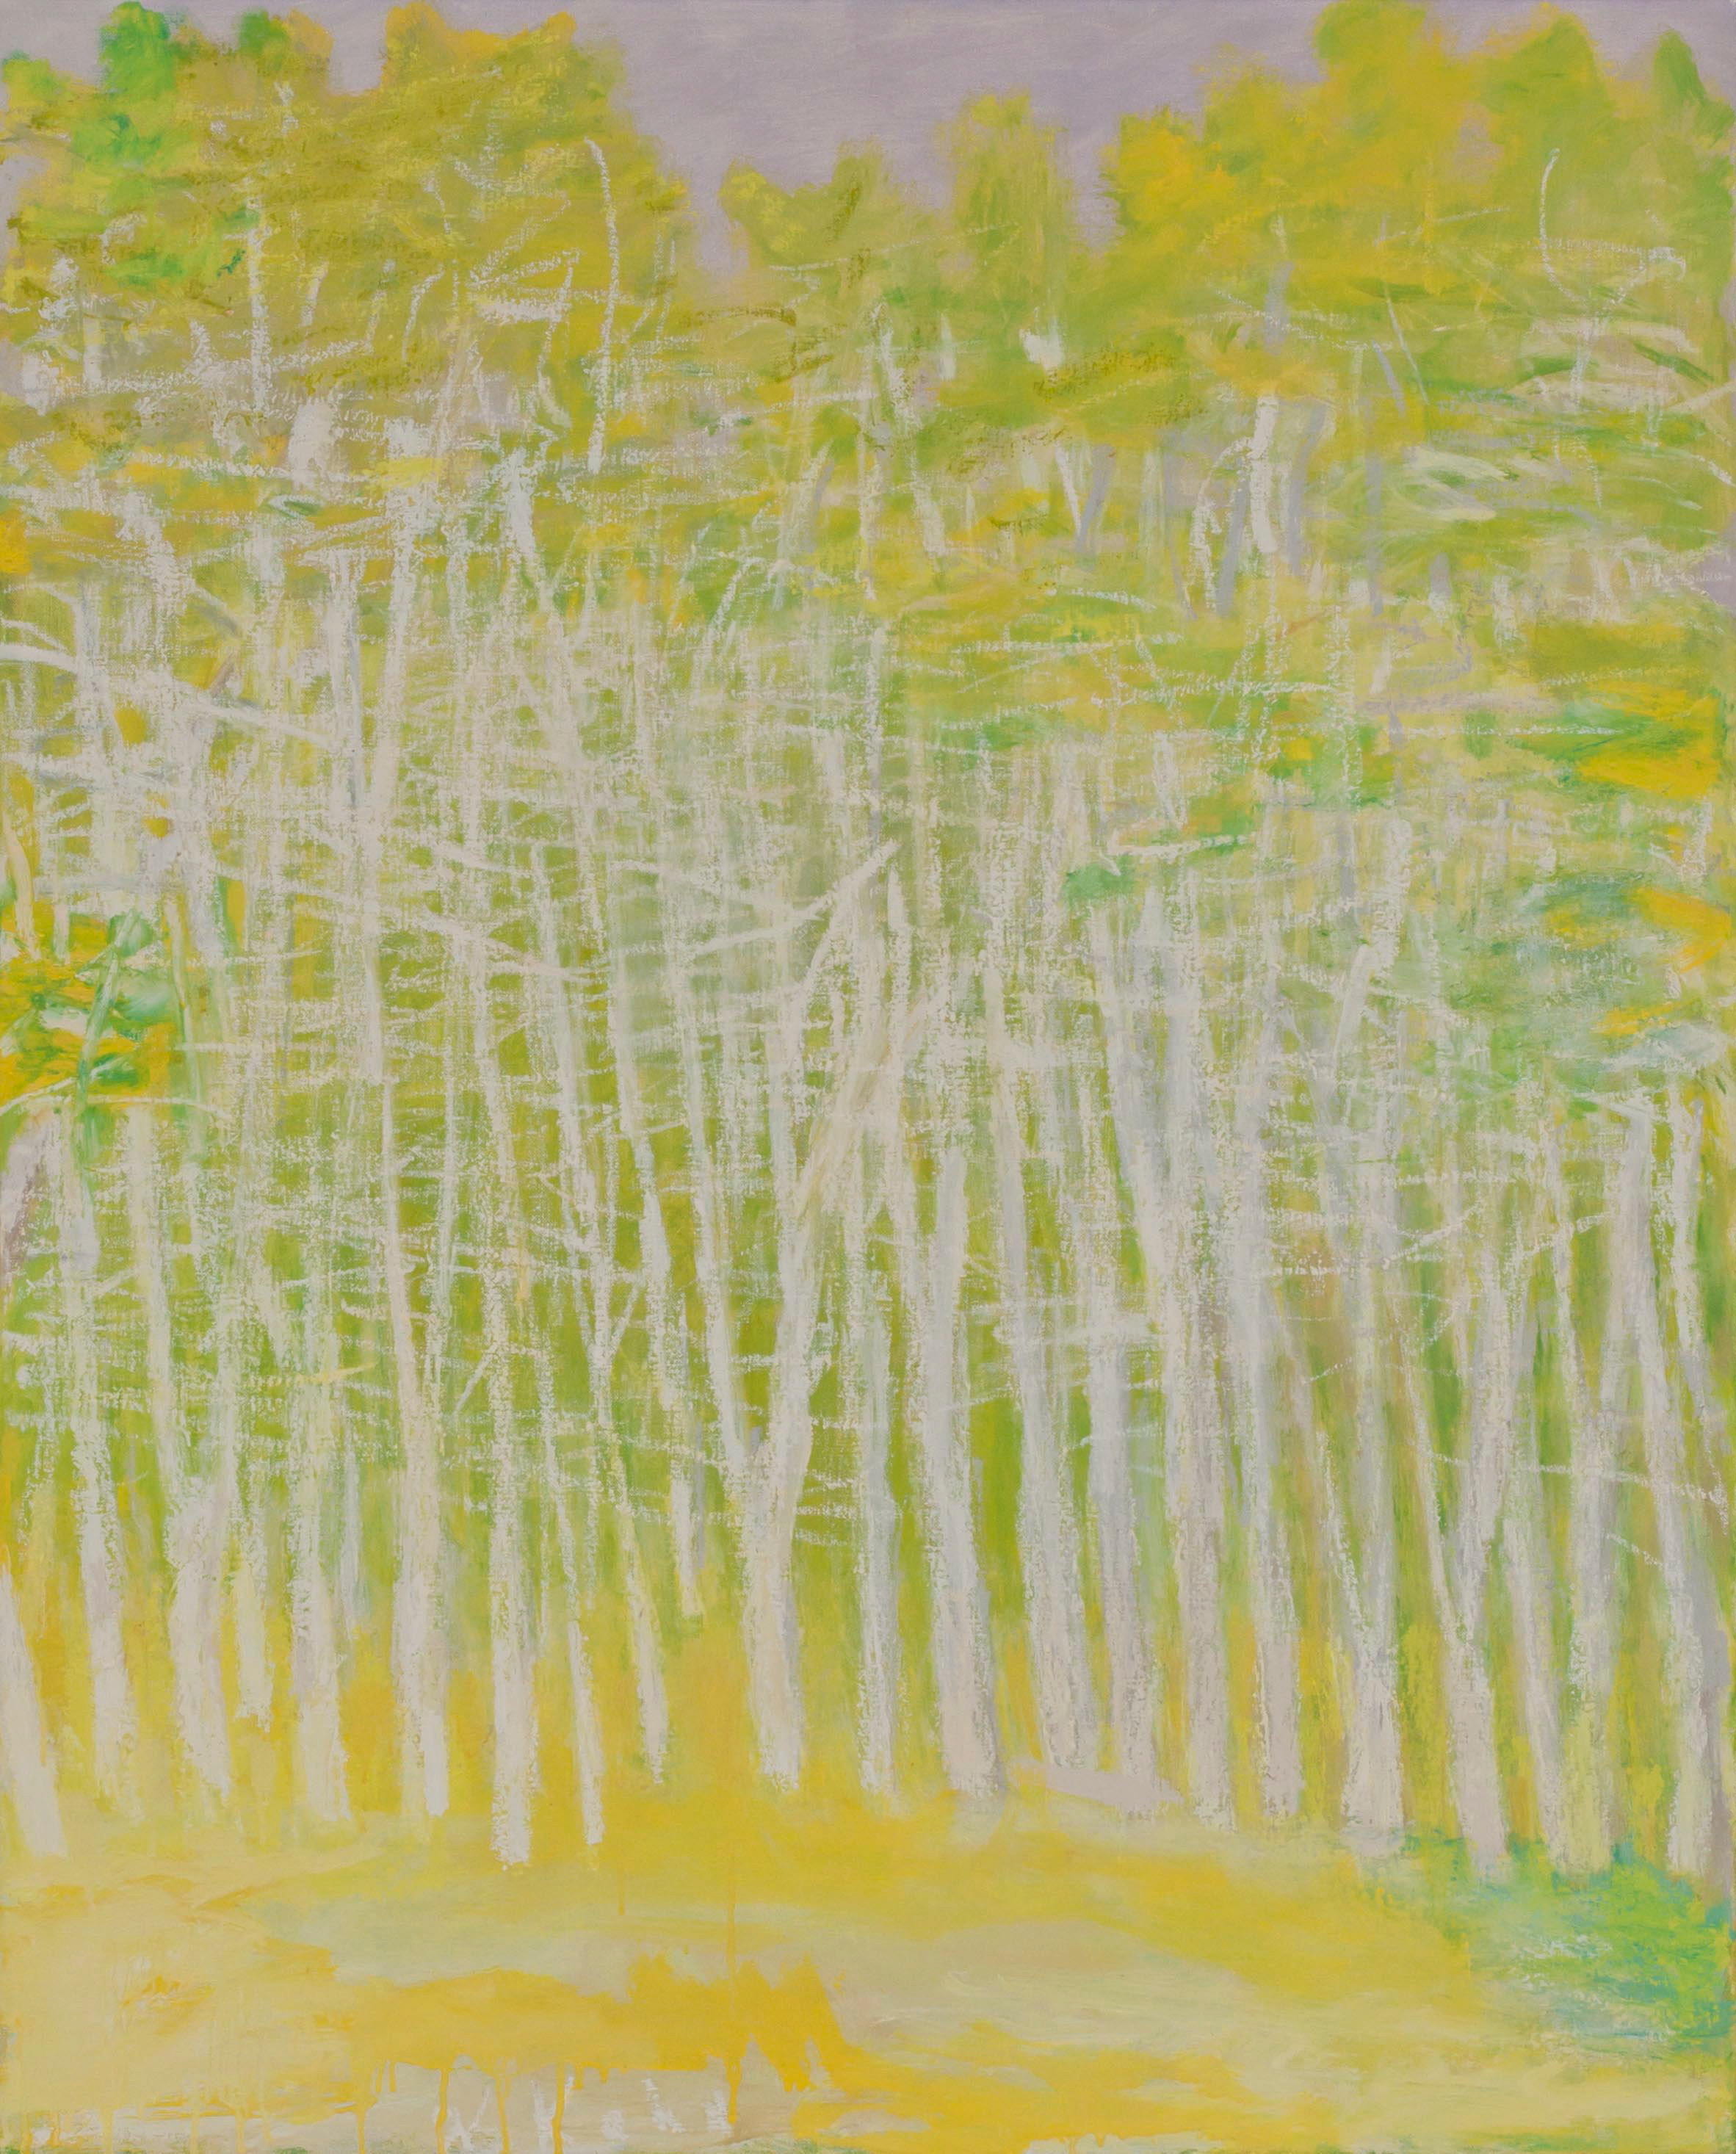 Yellow and White , 2010  Oil on canvas  40 x 32 inches